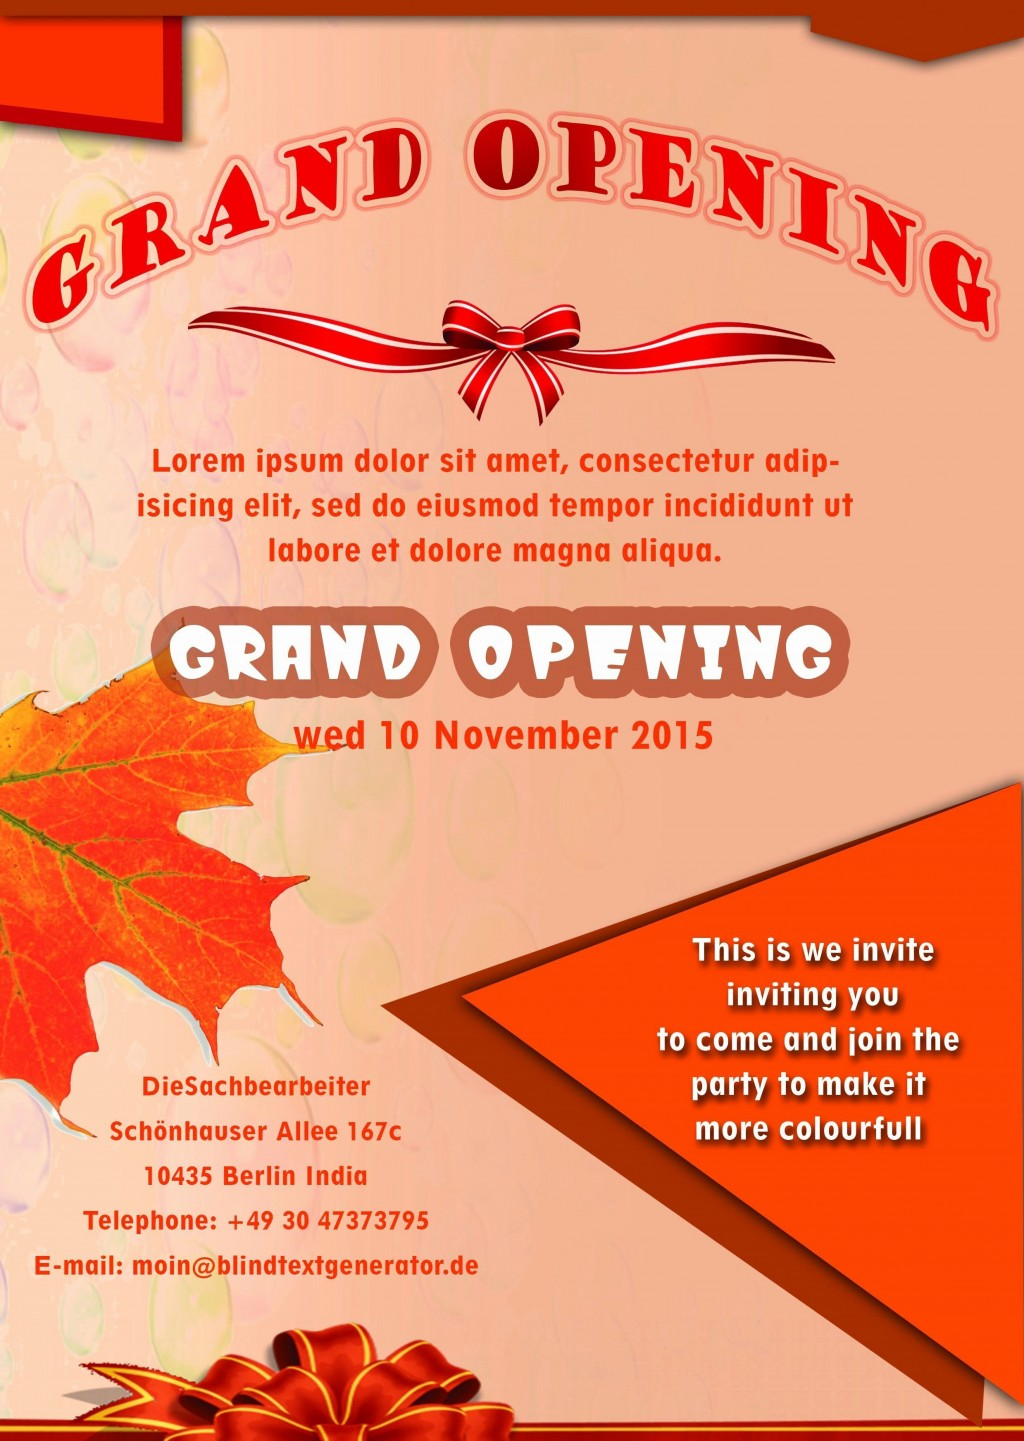 002 Surprising Grand Opening Flyer Template Free Idea  RestaurantLarge